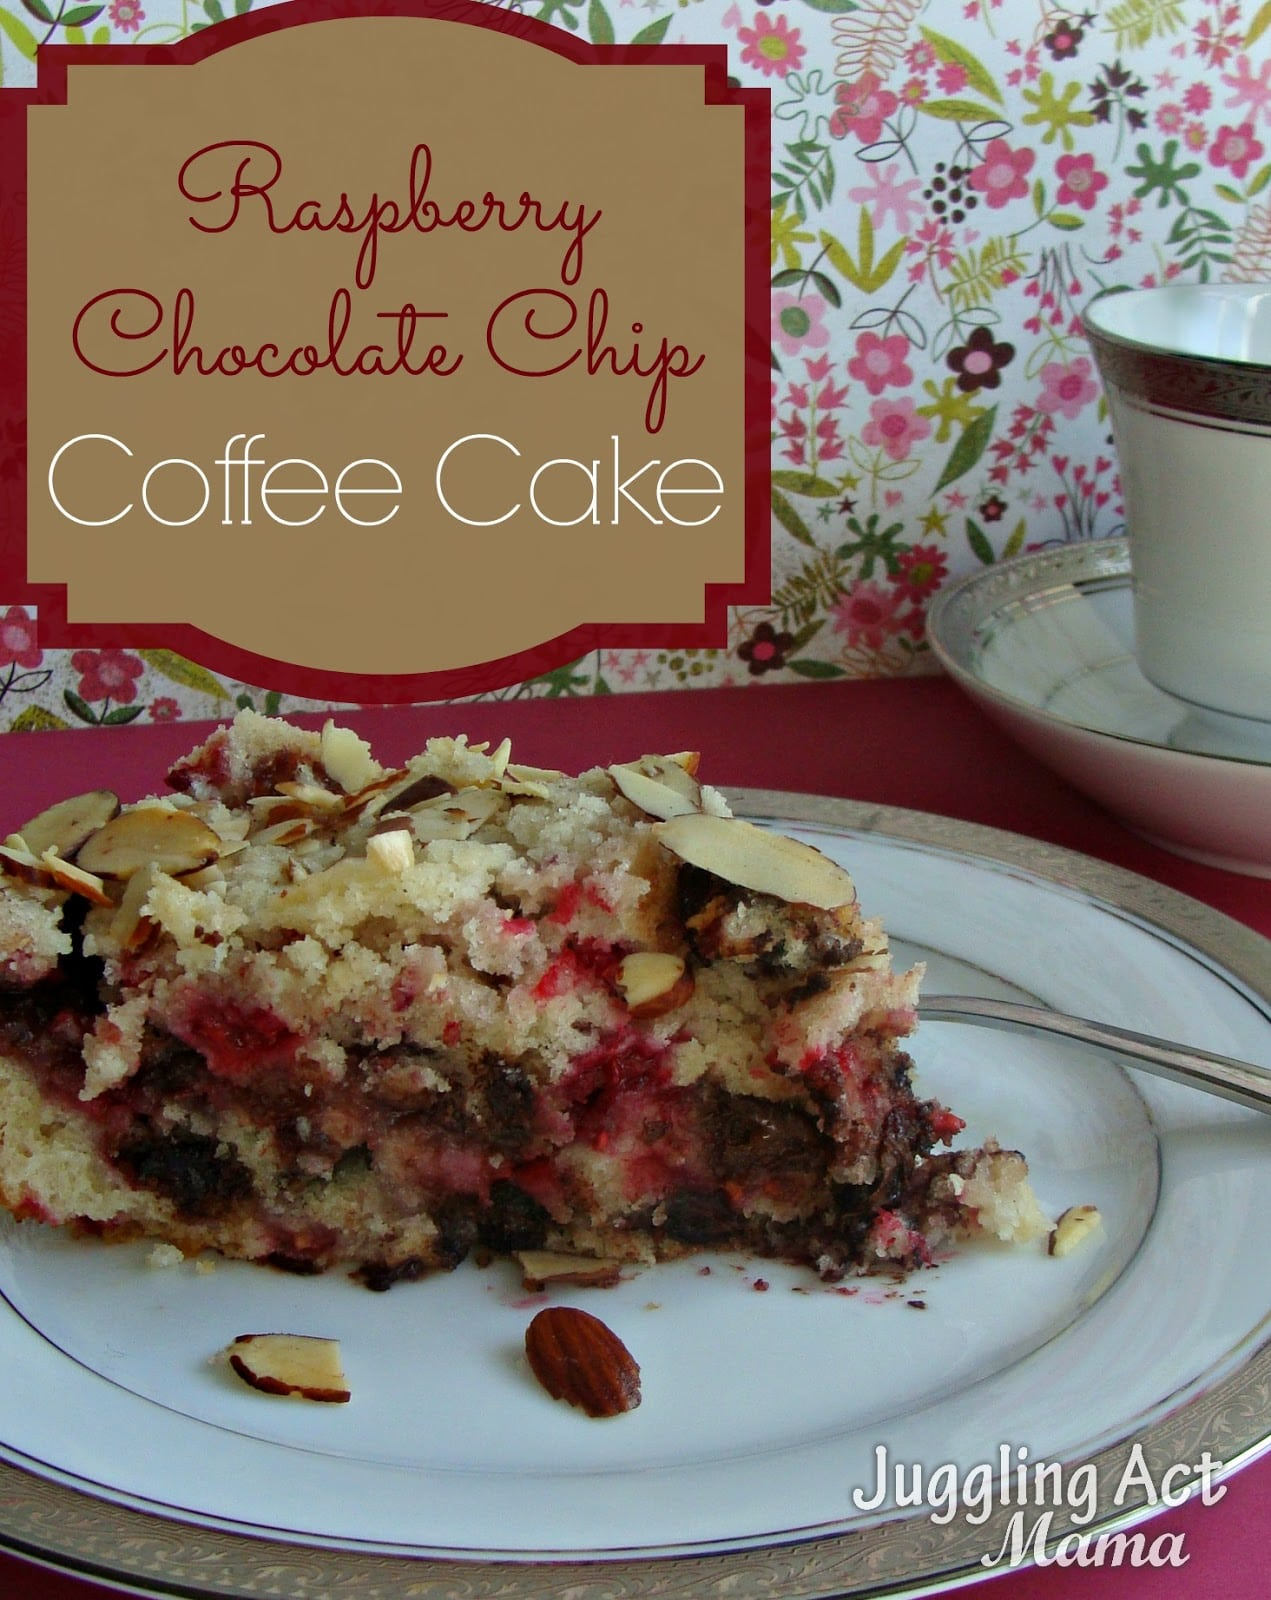 Raspberry Coffee Cake With Chocolate Chips and Almonds